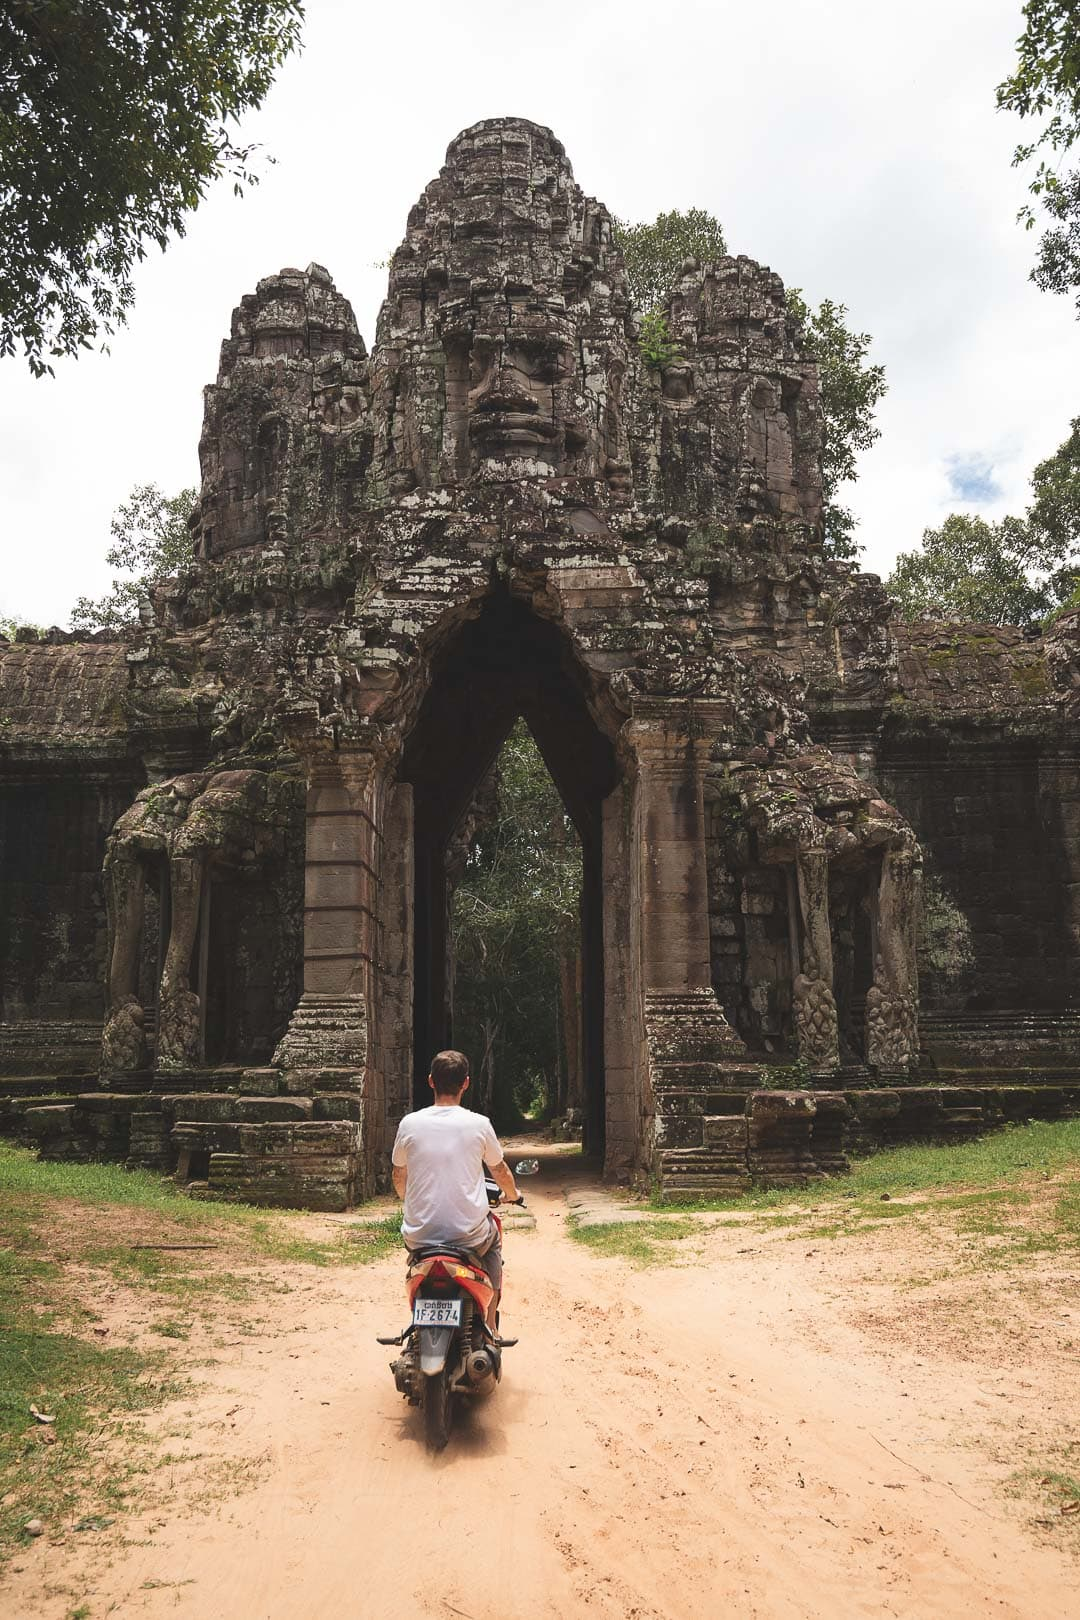 Riding a scooter through the death gate inside Angkor Archaeological Park